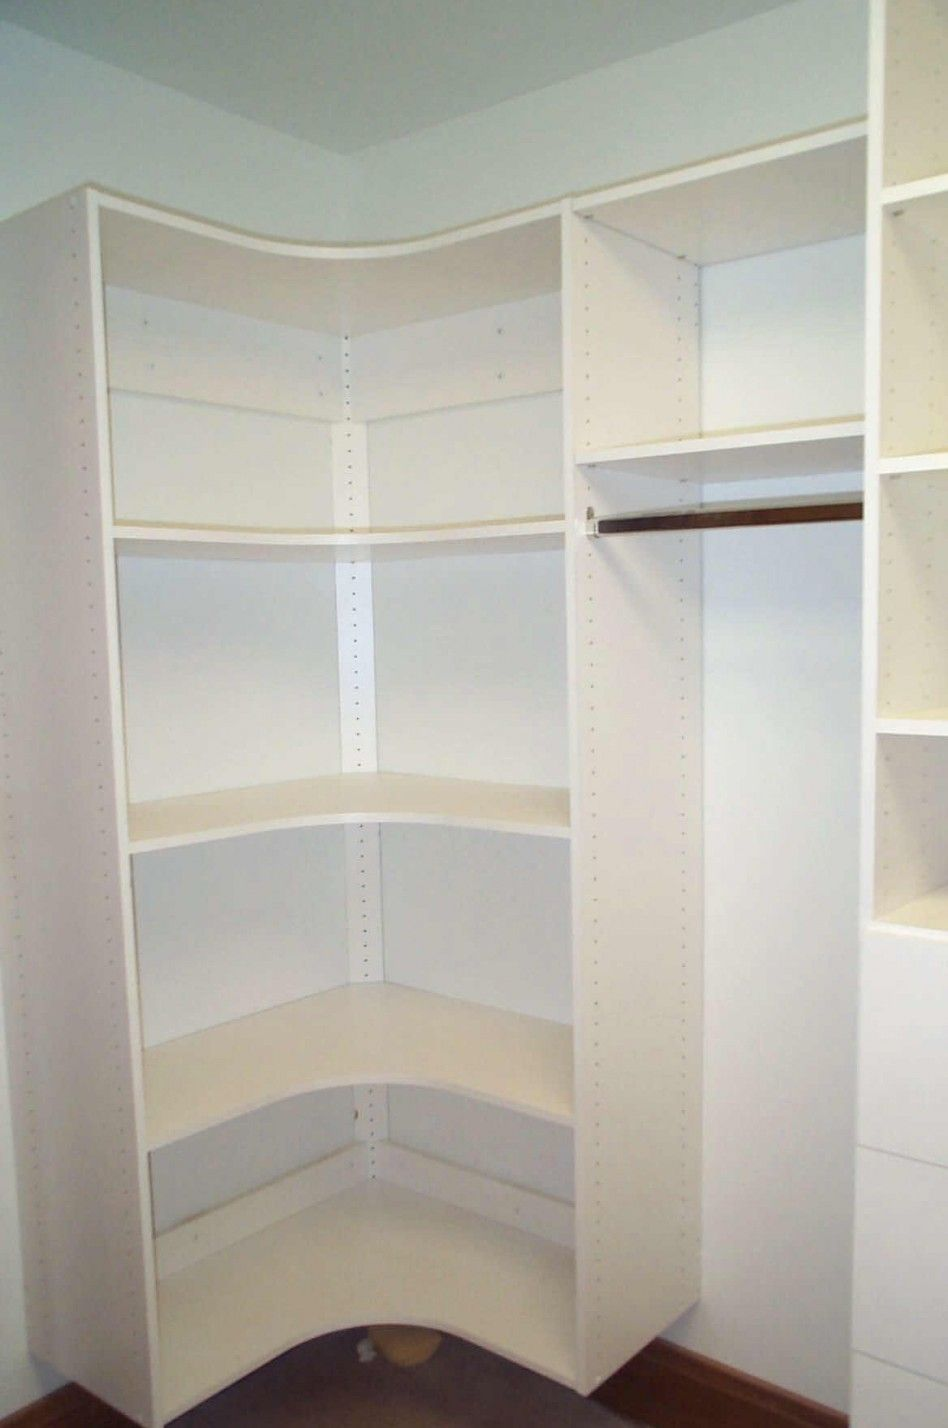 Delightful Bathroom, How To Design Walk In Closet Chic And Elegant: Wonderful White  Plywood Small